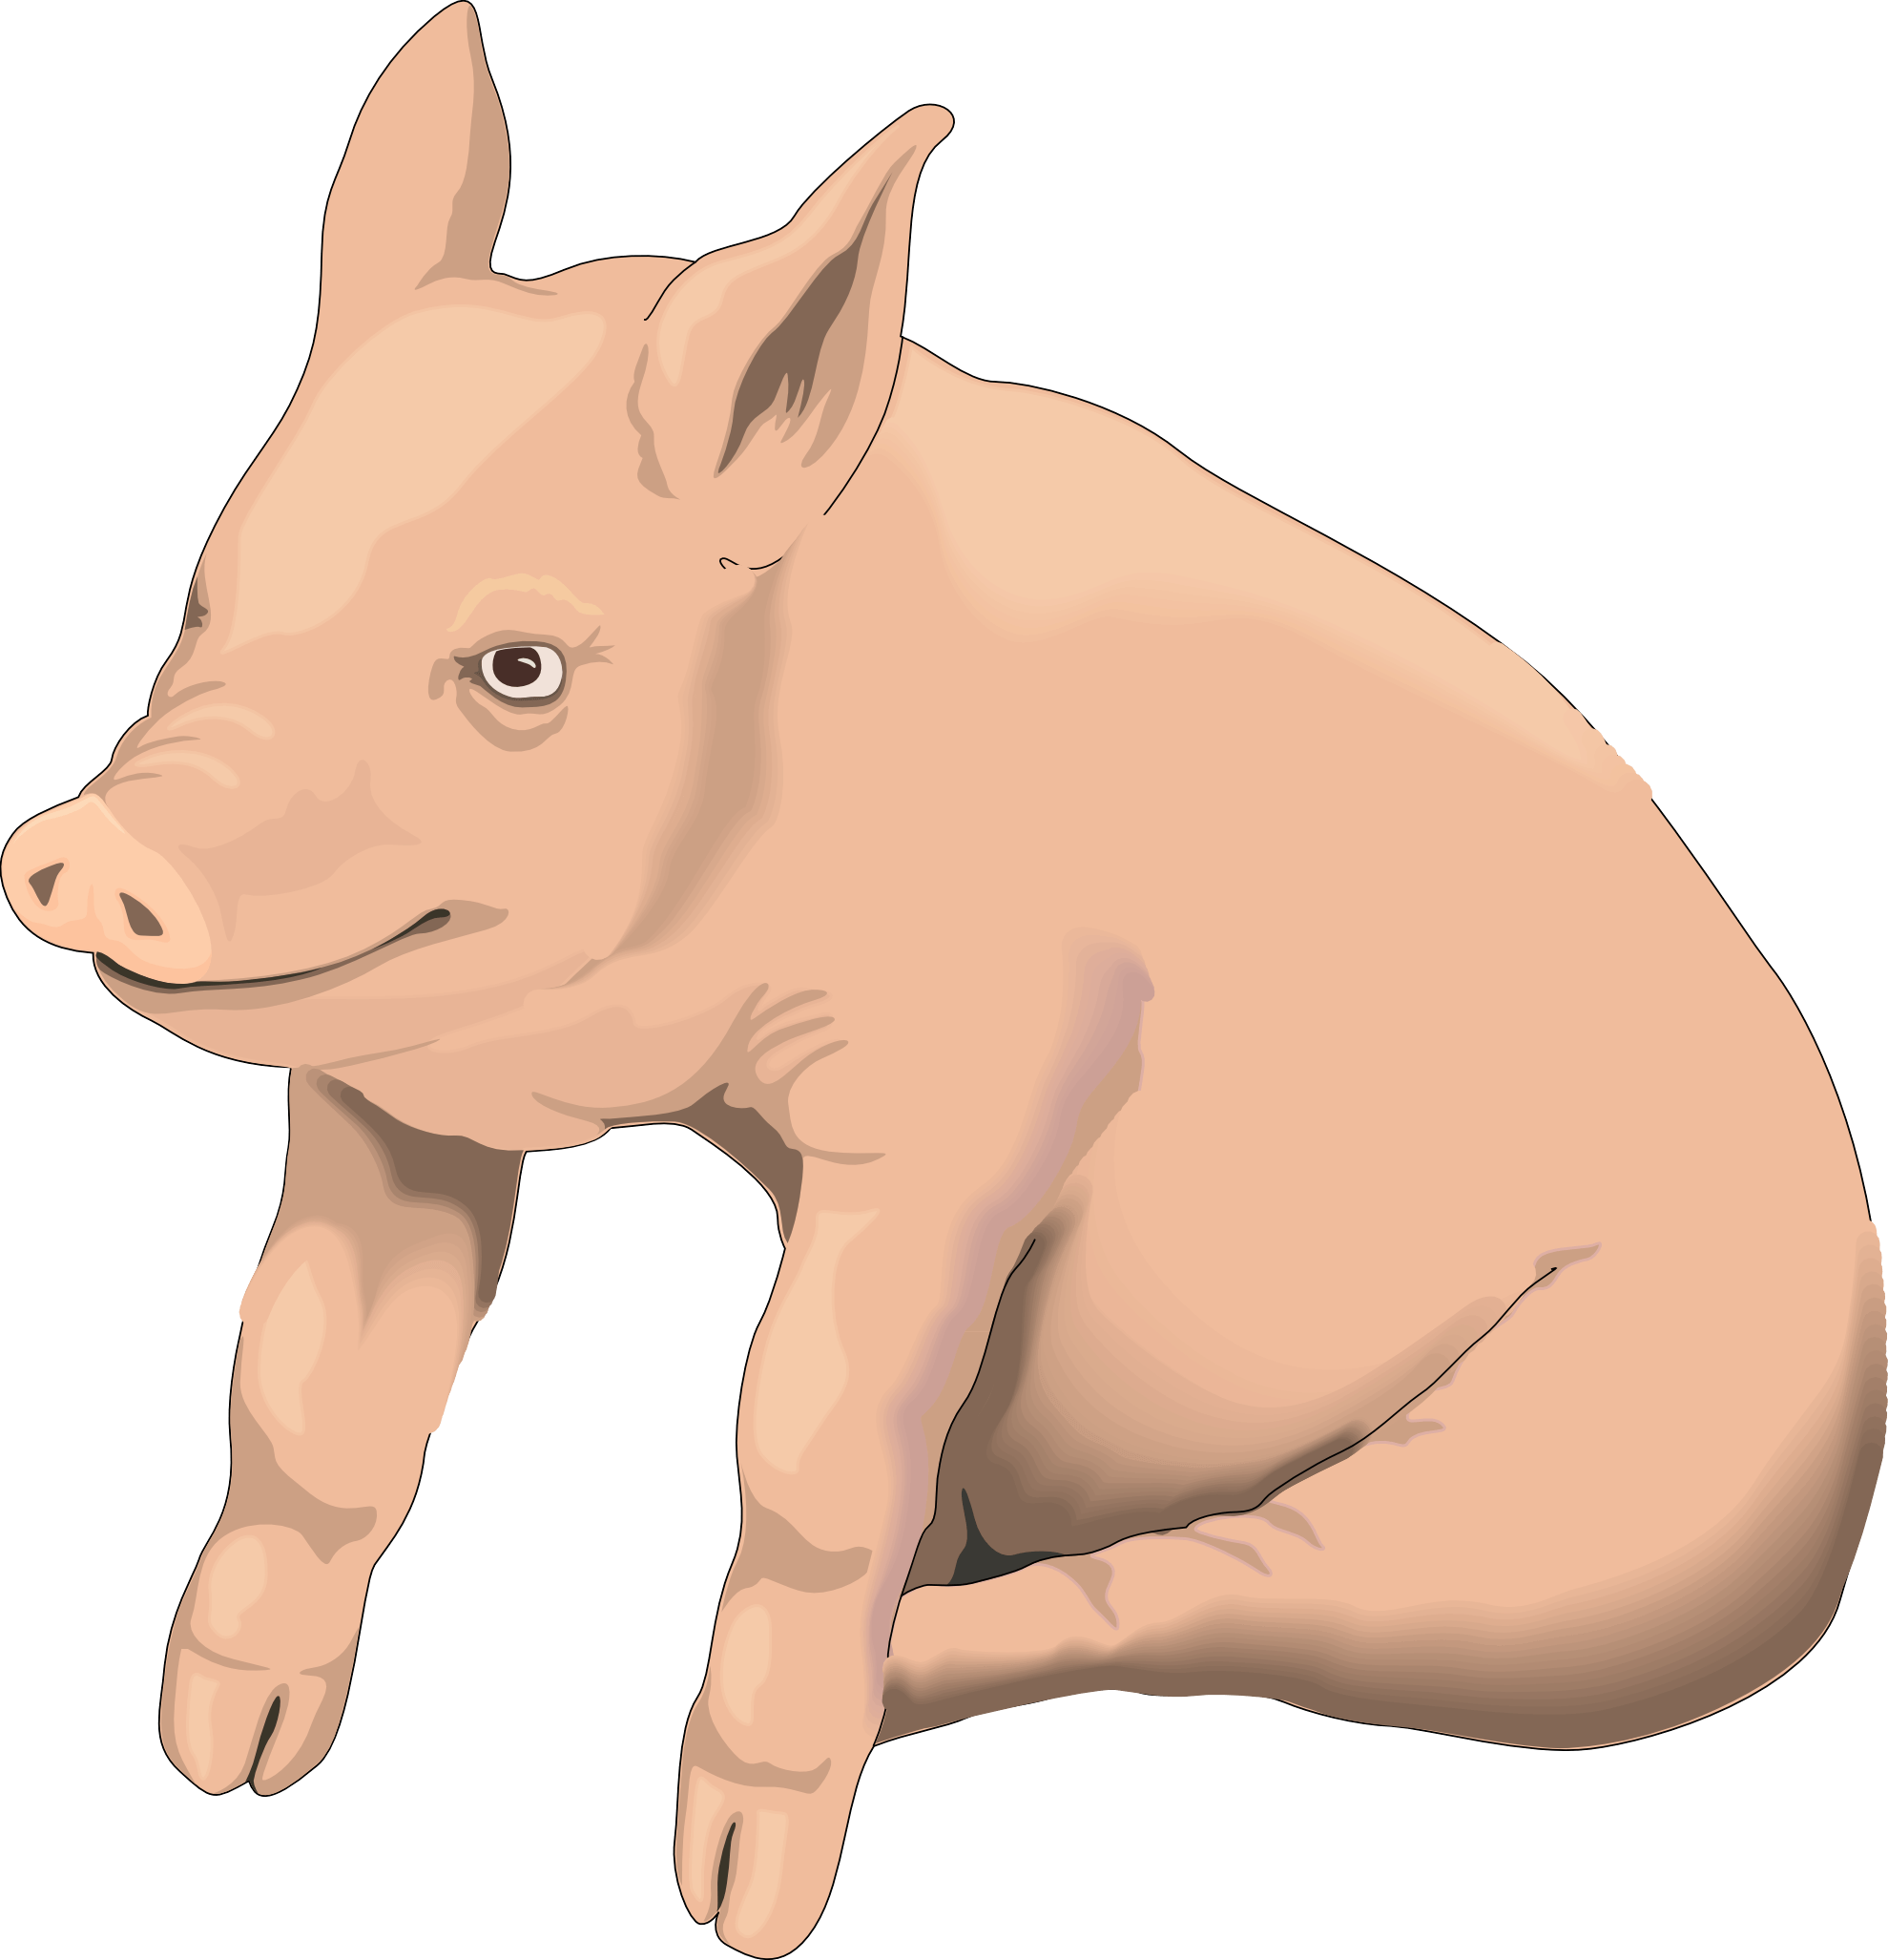 Picture Pig Png Image PNG Image